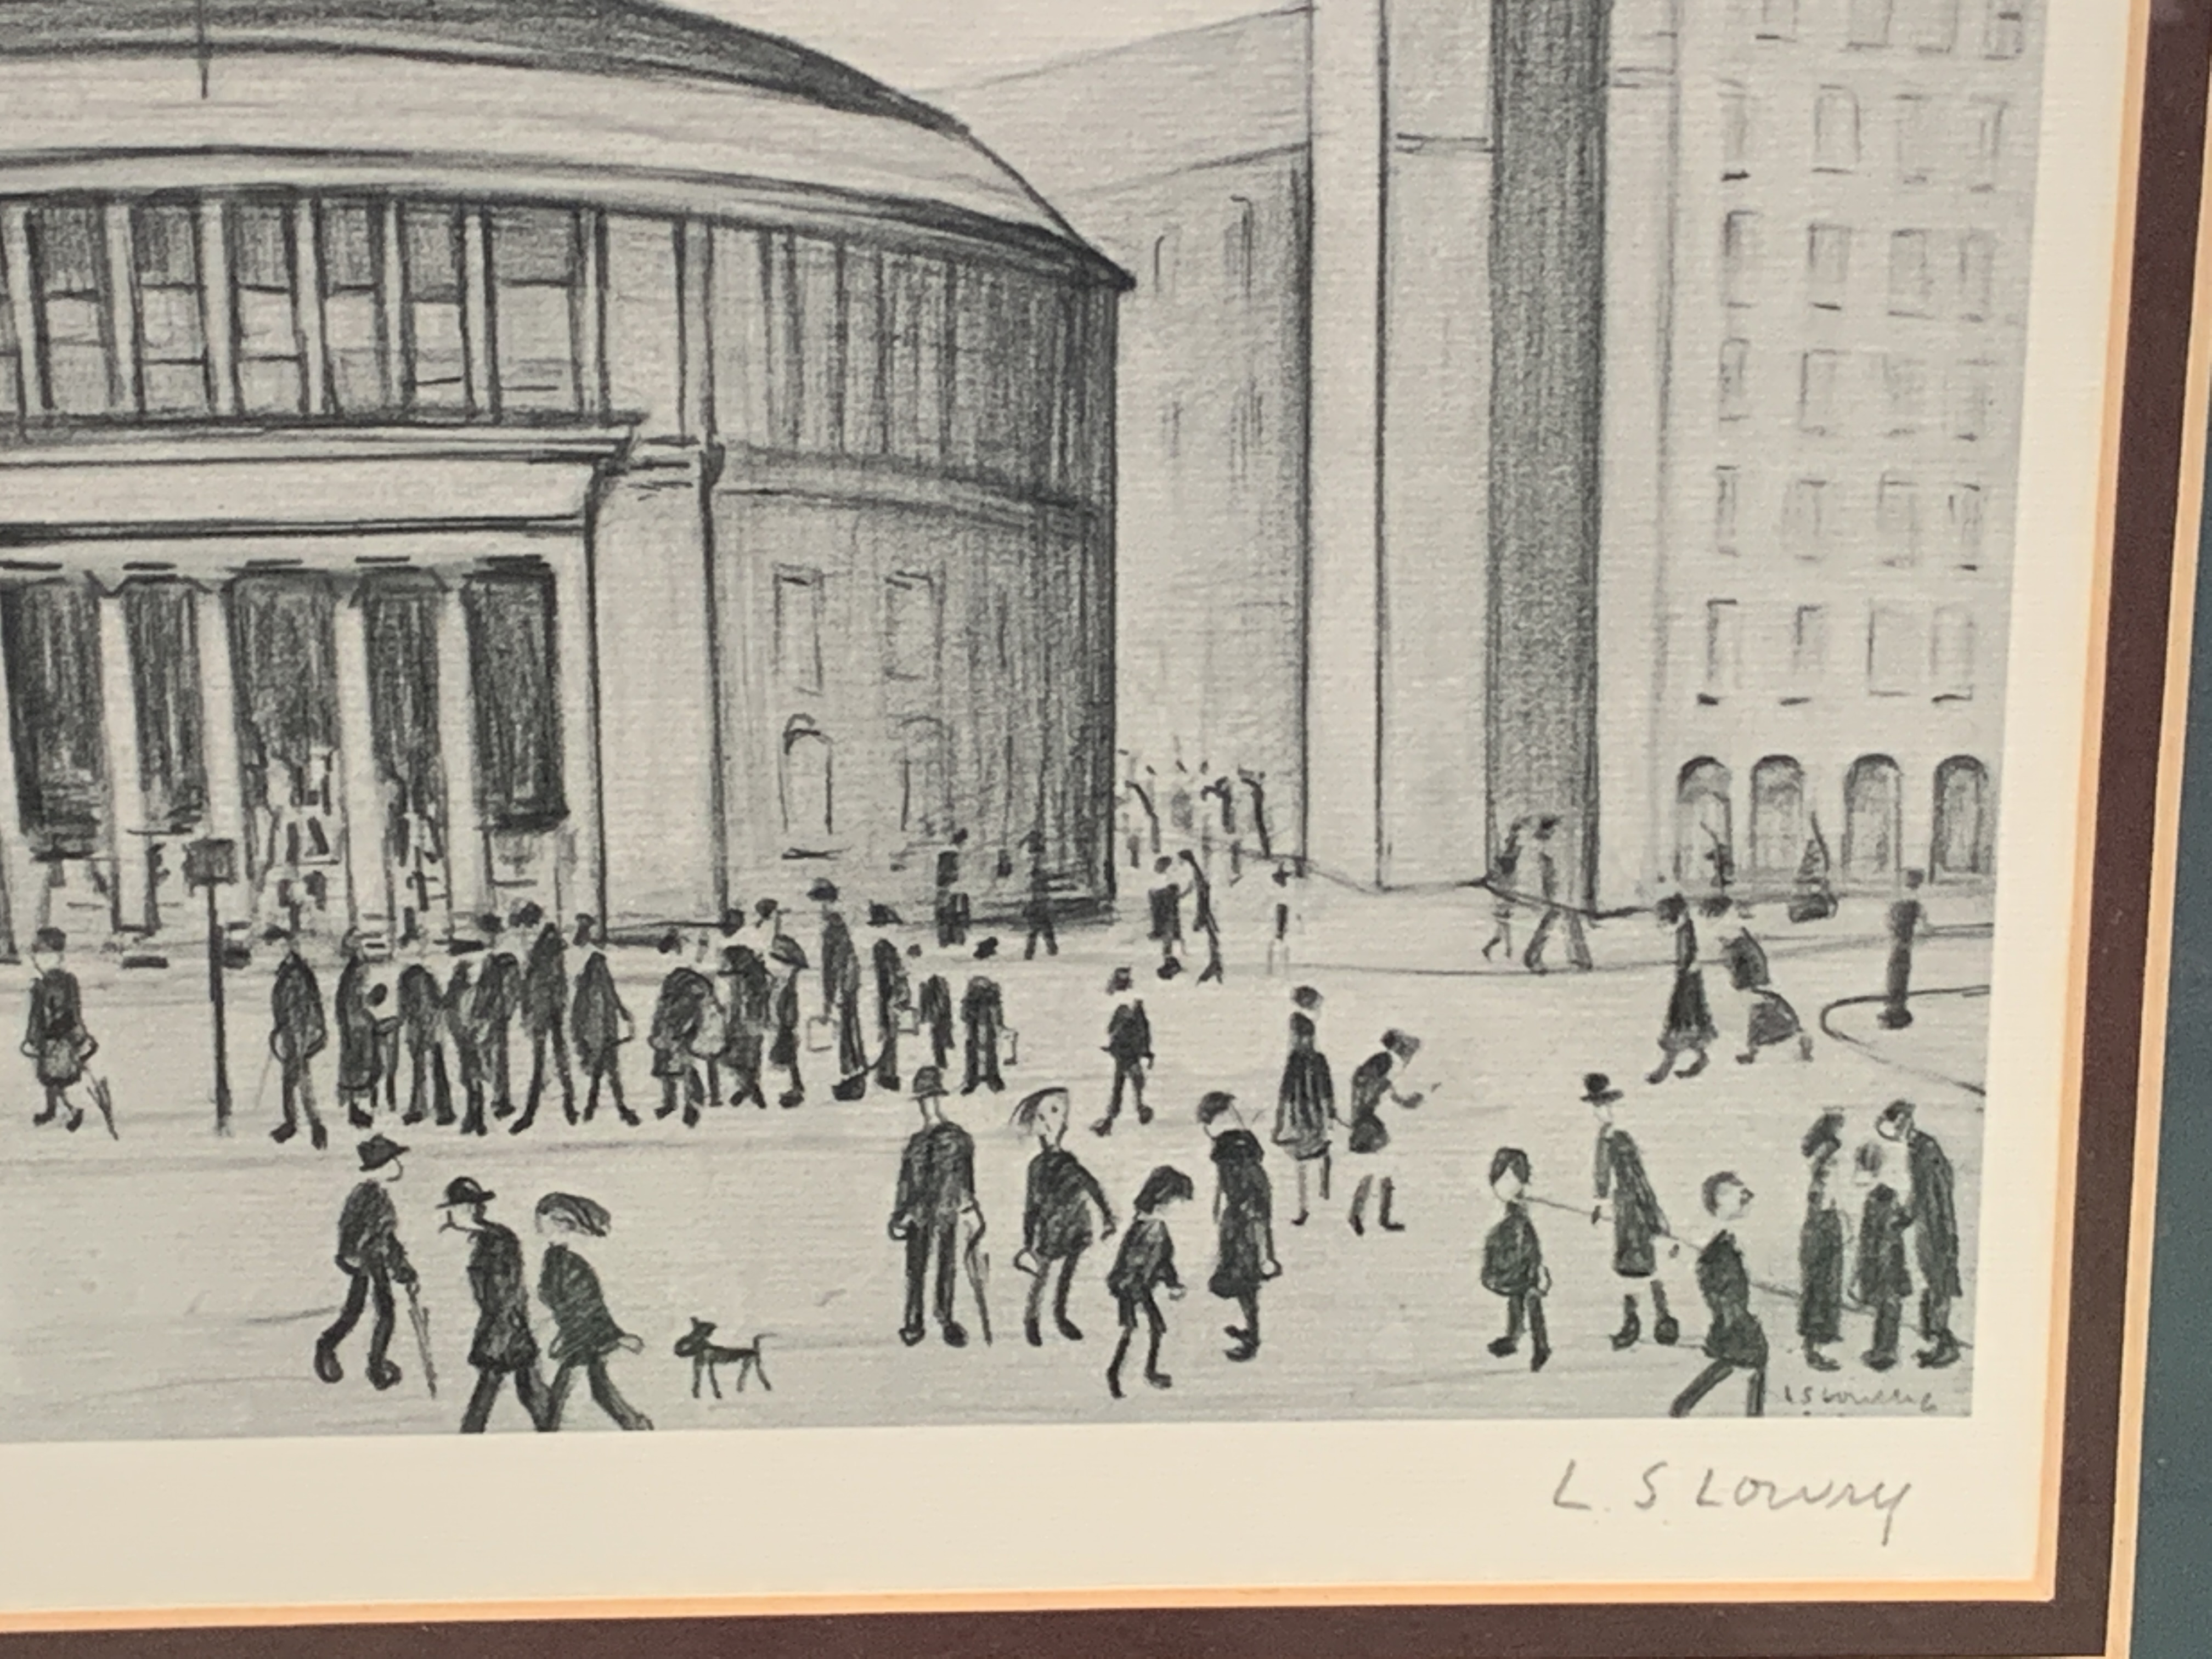 Framed and glazed Limited Edition L S Lowry print of Manchester Reference Library - Image 3 of 4